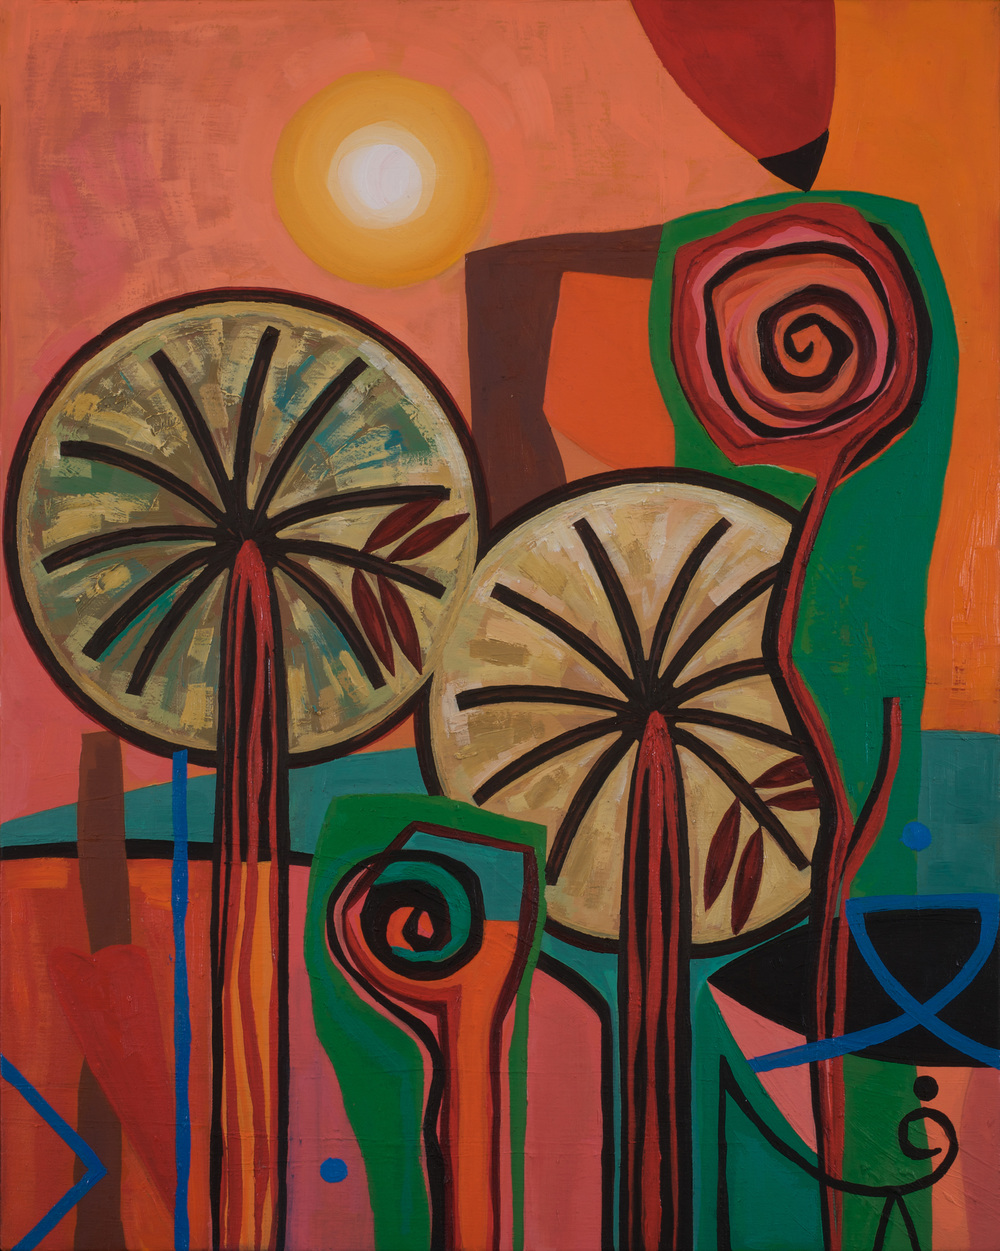 Noor  Kites and Shattered Dreams  Oil on canvas 50x40cm 2008 Private Collection Dubai